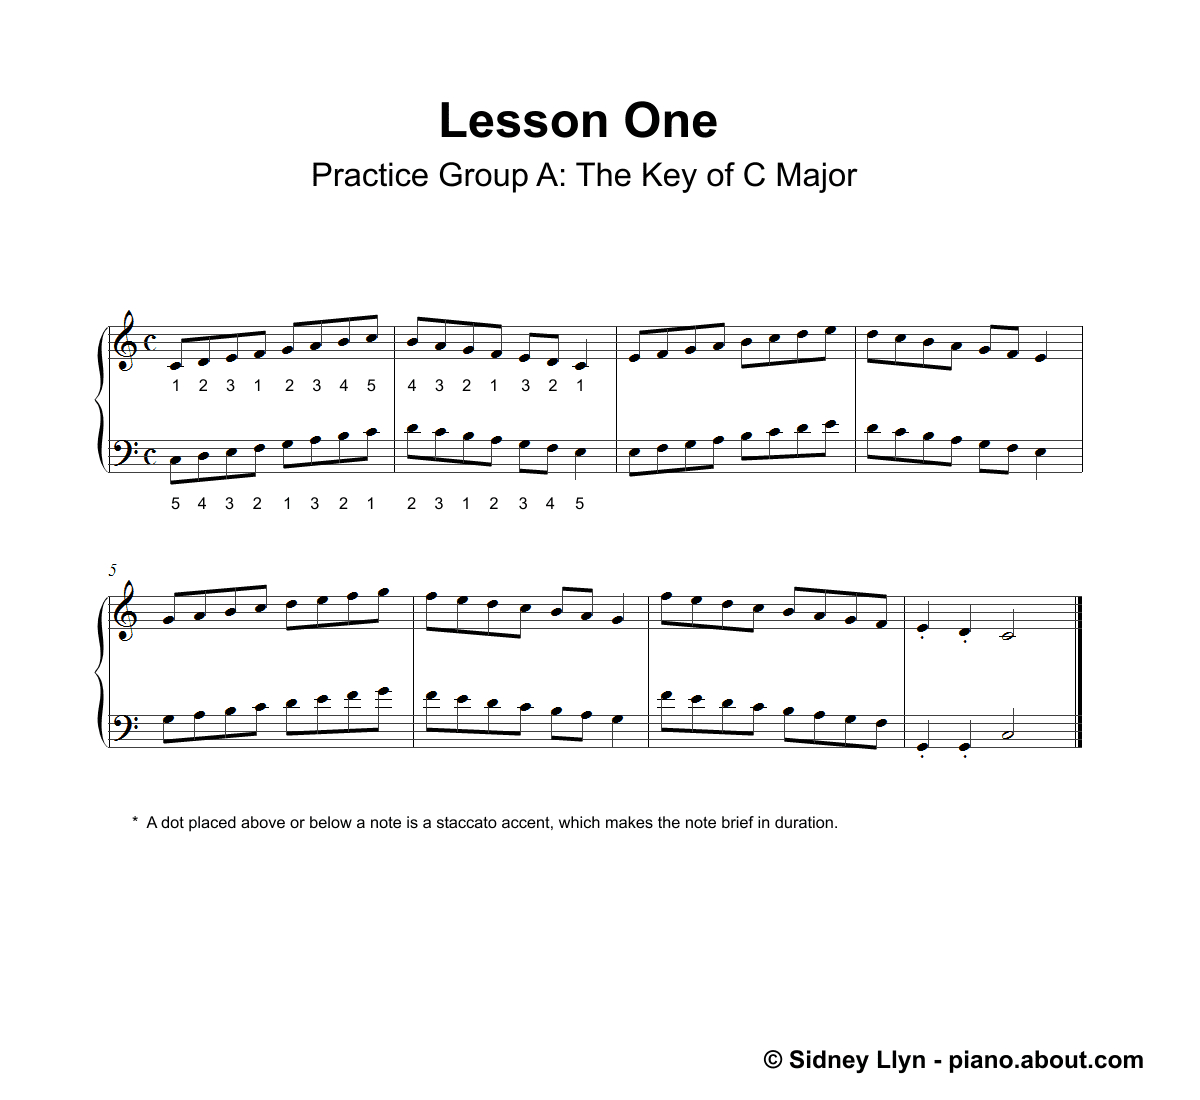 Beginner Piano Lesson Book - Free Printable Sheet Music For Piano Beginners Popular Songs